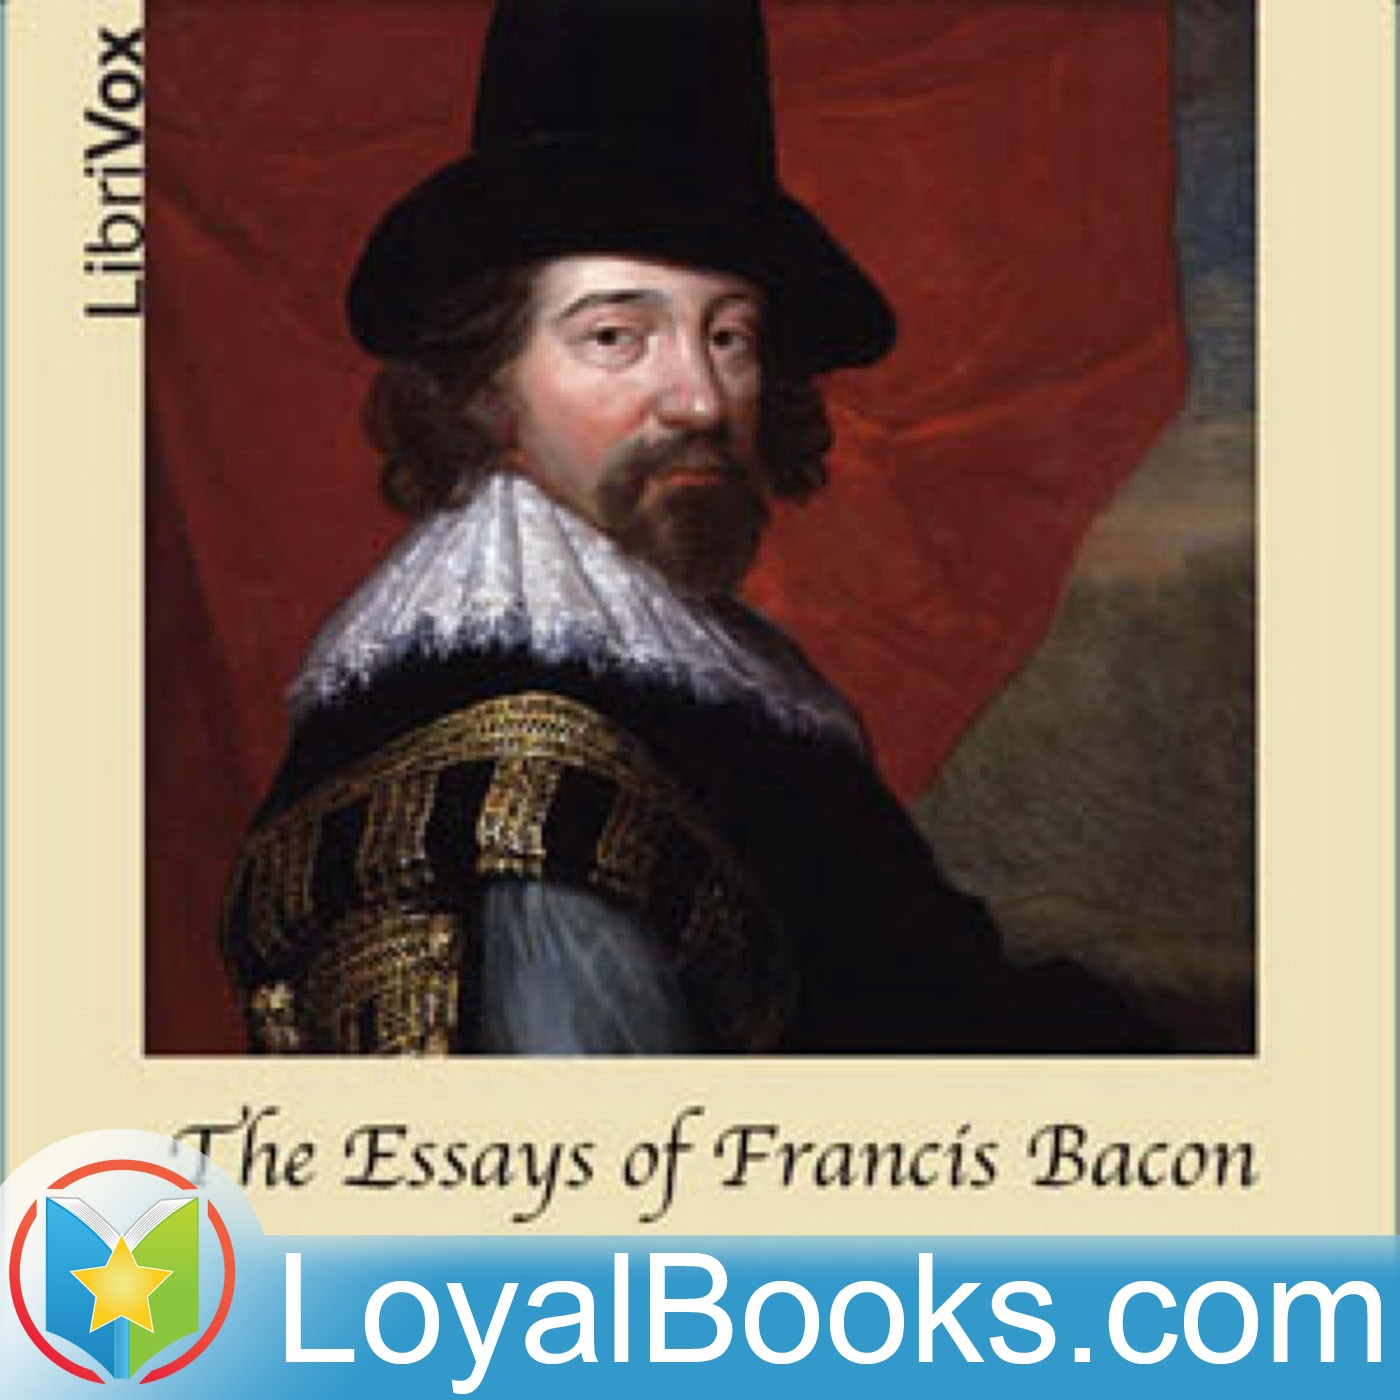 quotes francis bacon essays Discover francis bacon famous and rare quotes share francis bacon quotations about science, knowledge and understanding &quotit's not what we profess but what we&quot.